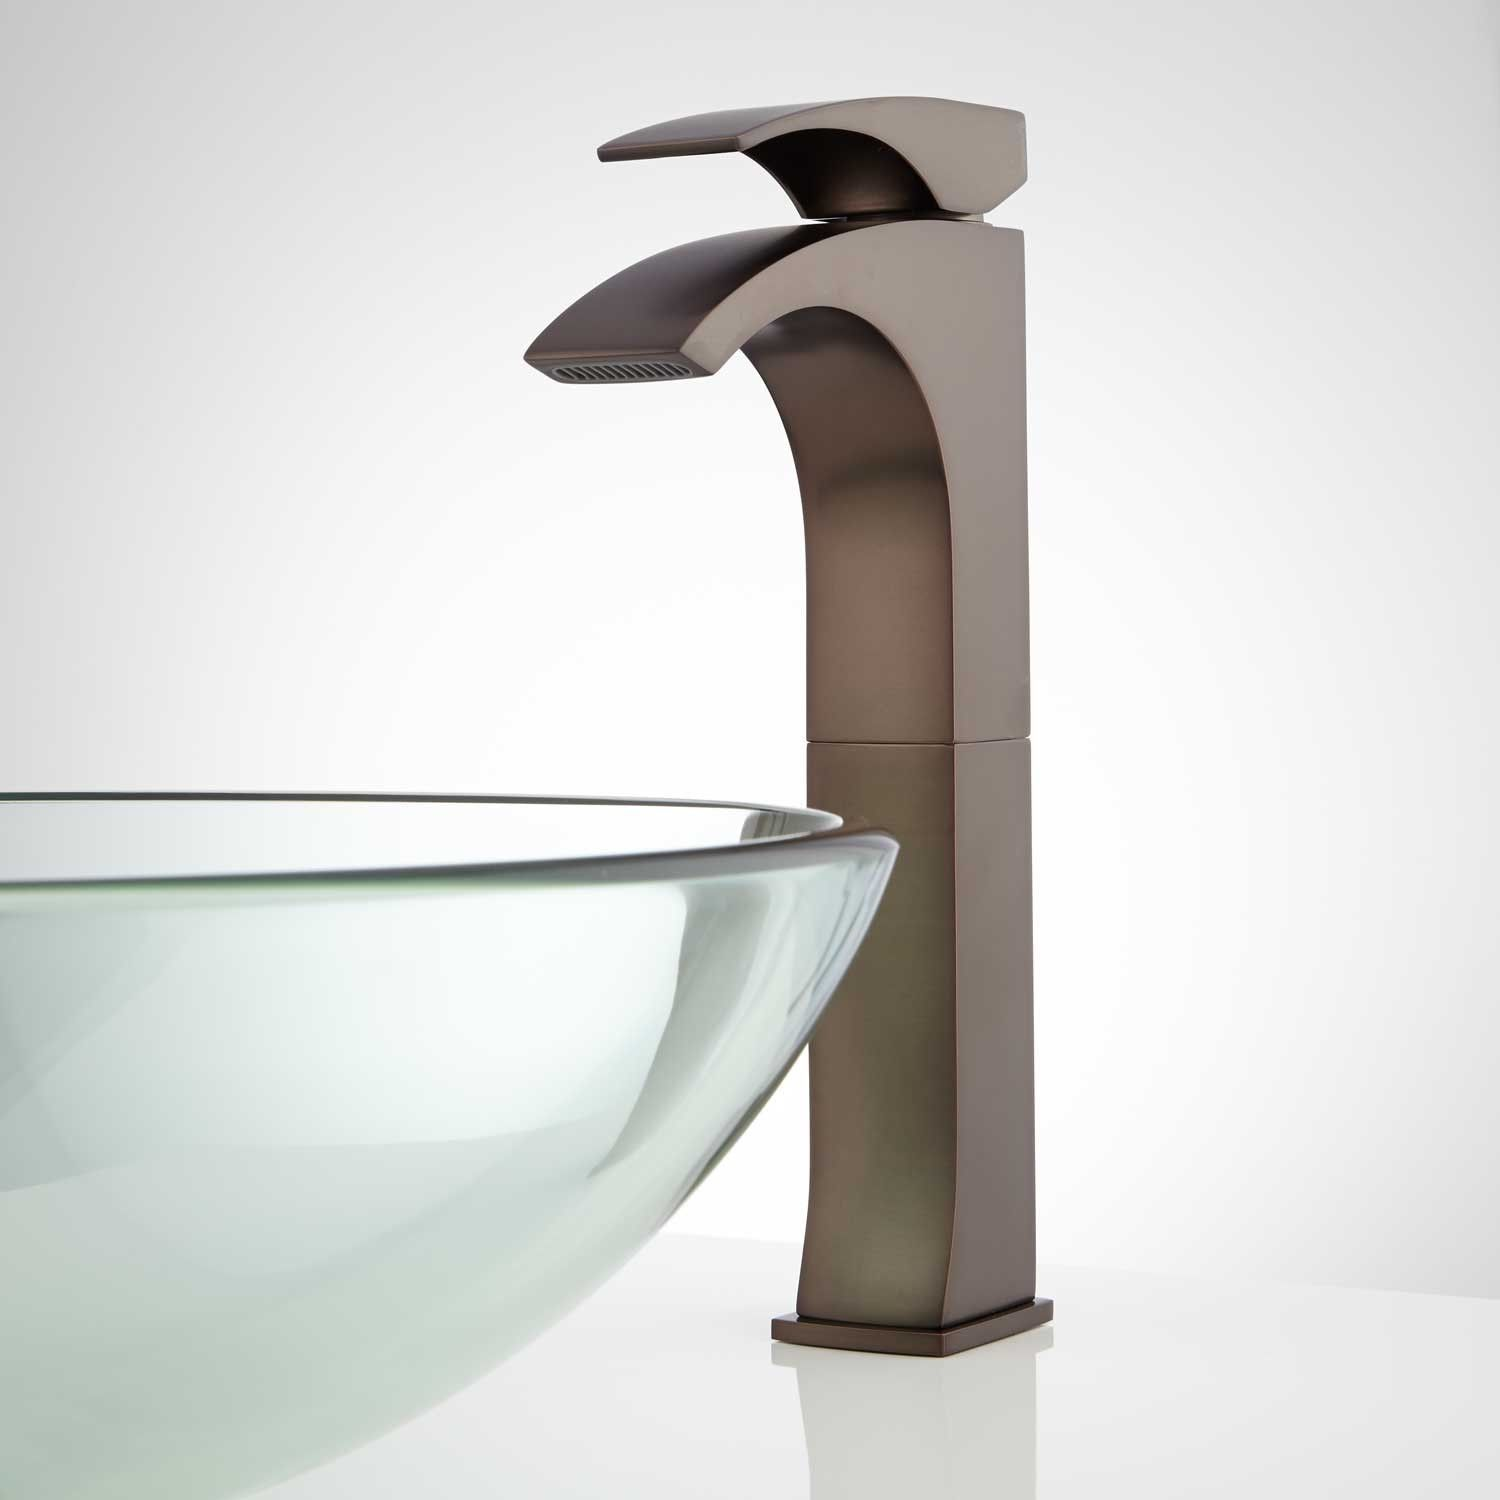 Montevallo Single Hole Vessel Faucet With Pop Up Drain Vessel